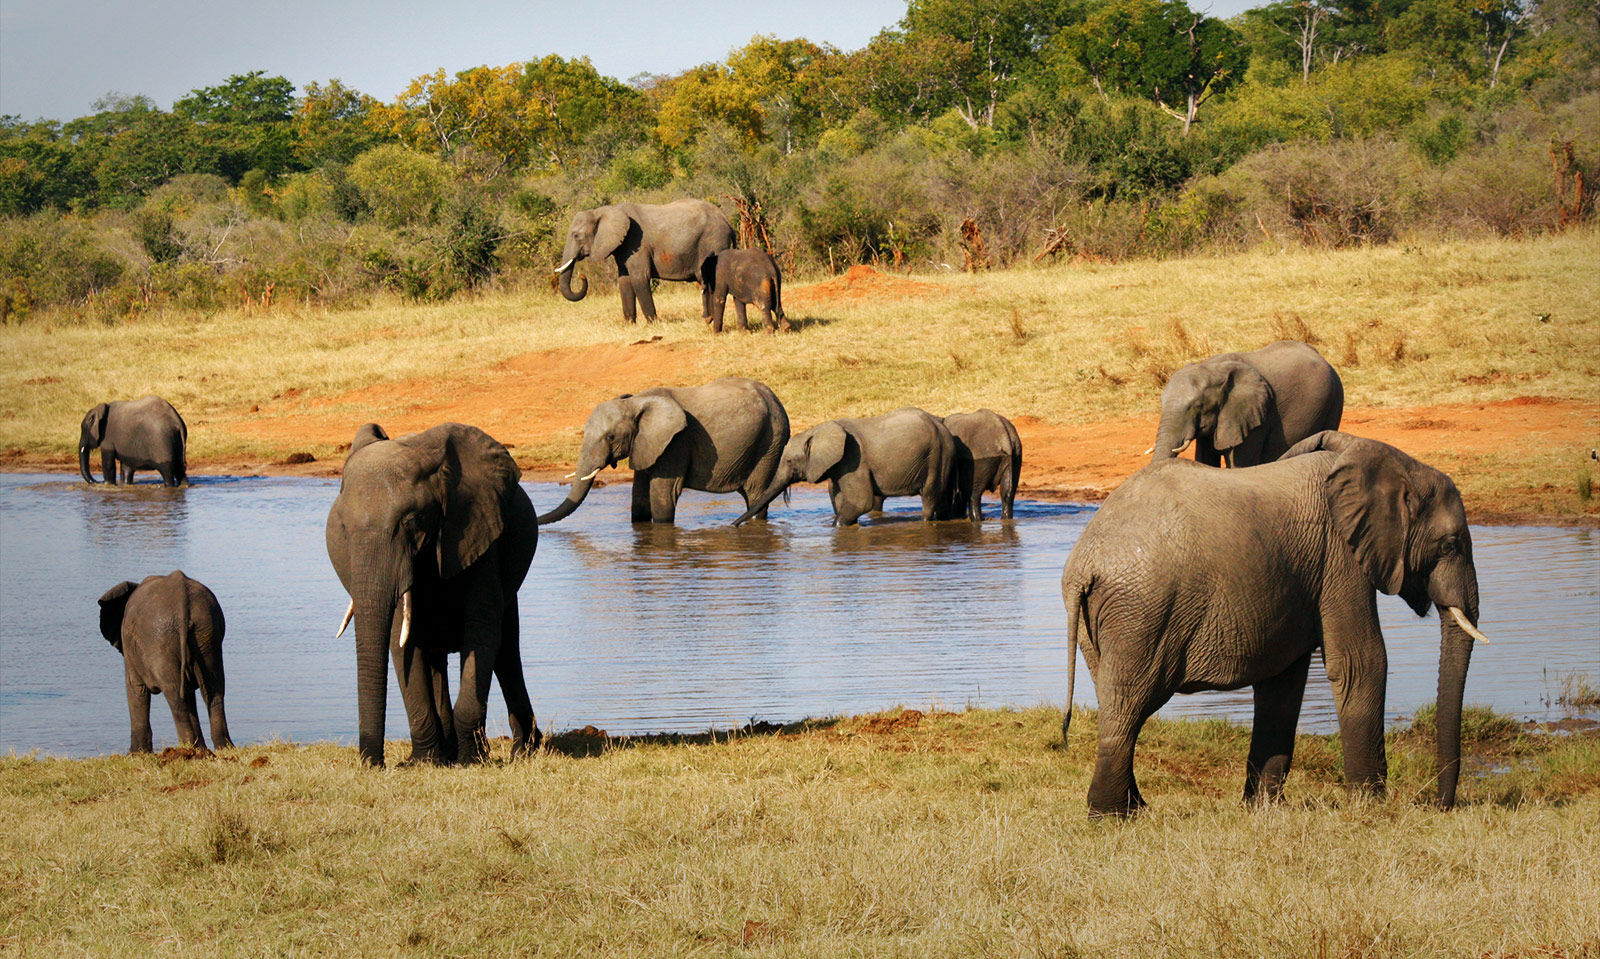 Elephants by a River